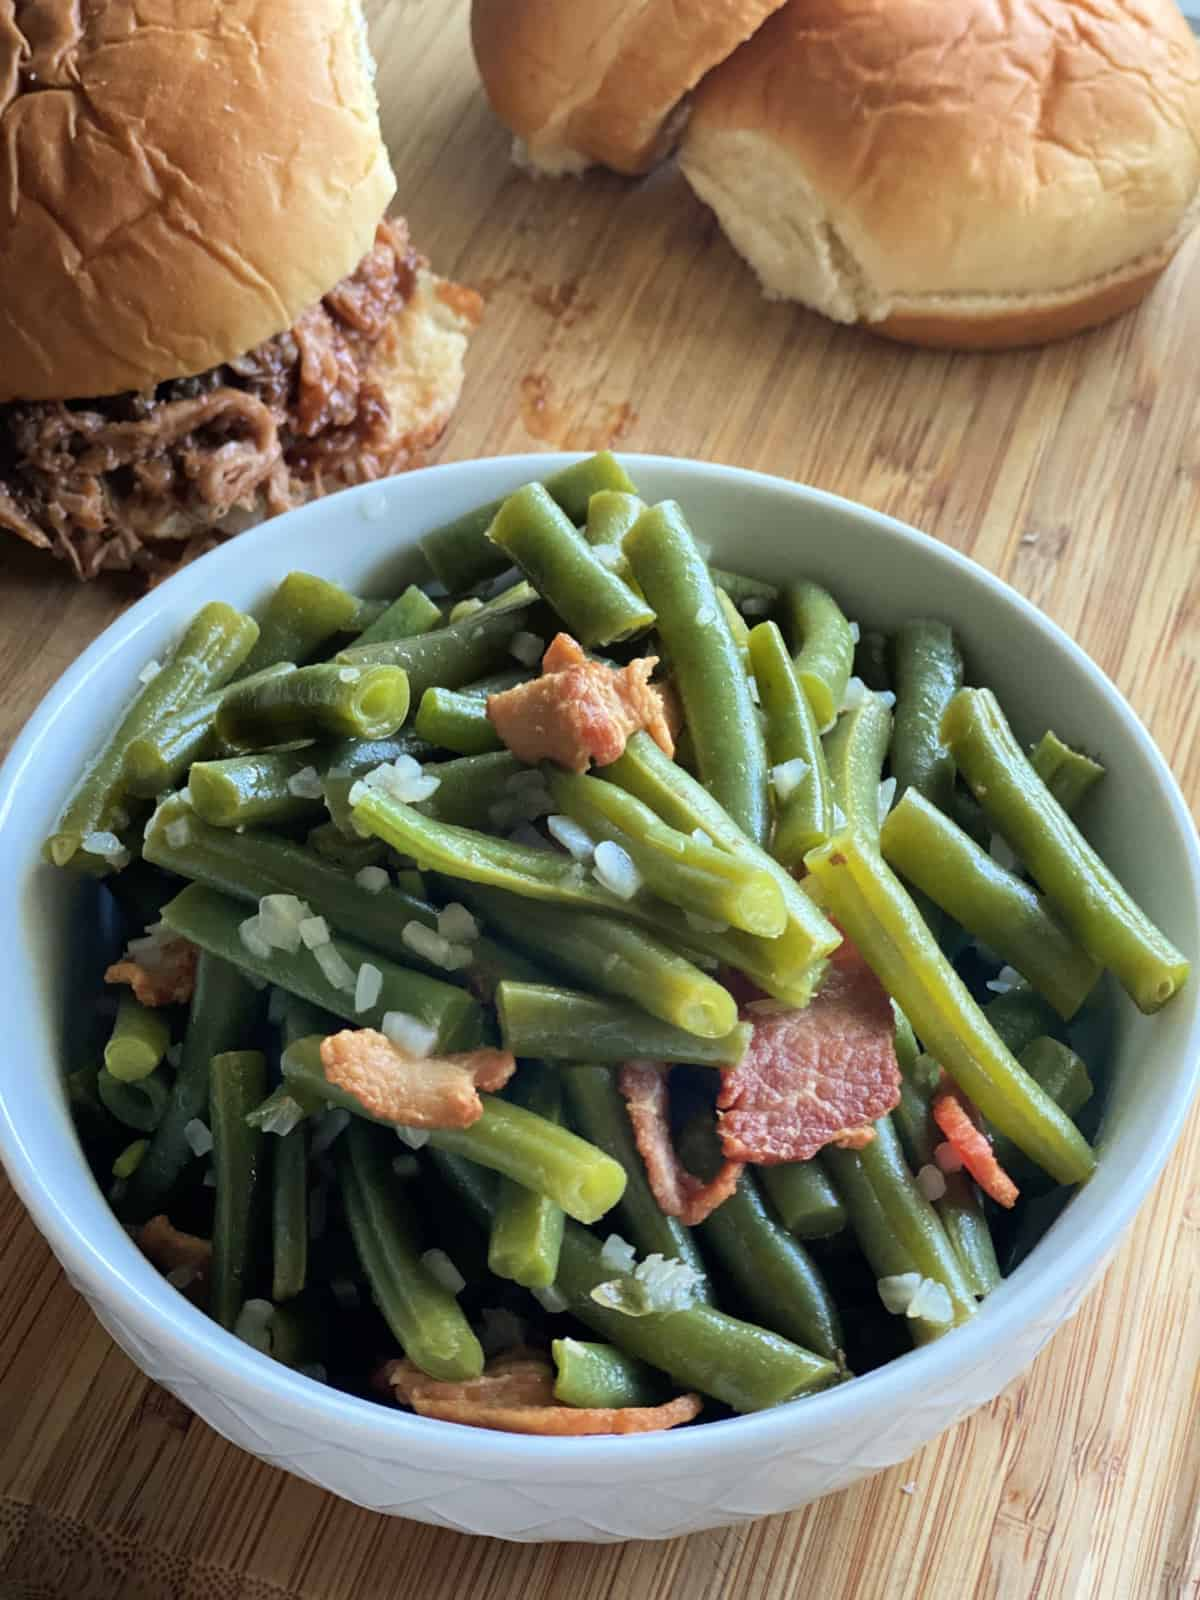 White bowl with chopped green beans, bacon, and onions.